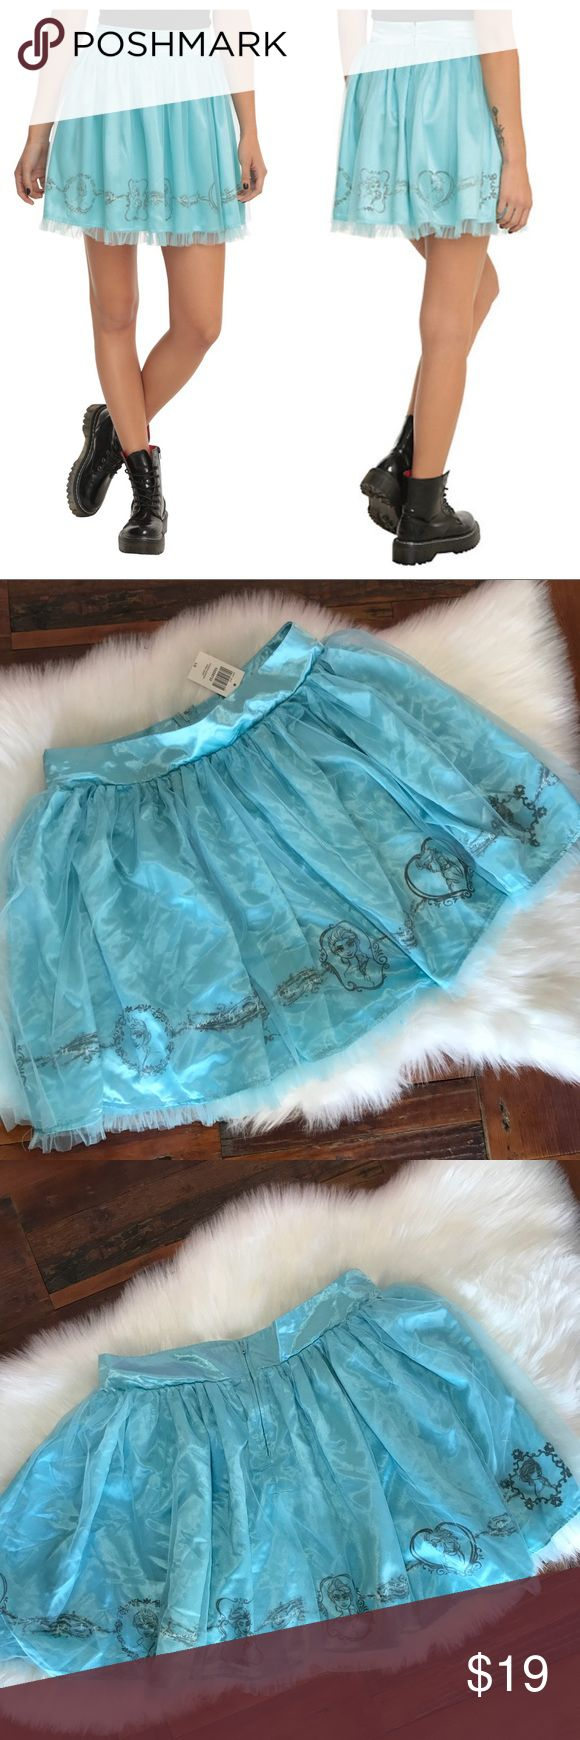 NEW Frozen Disney Hot Topic Skirt Halloween Winter Brand new with tags, has been stored folded up so it could use a fresh steam. Tulle overlay. Frozen Elsa border on the bottom with quotes in between. Shines aqua blue. Tulle ruffle on bottom. Wear this skirt for Halloween and all throughout winter! Adorable with black sweater and black tights. Disneyland or Disney World ready! Zips up the back. Waist laid flat is 16 1/4 in. Length is 19. Bundle for a 20% discount. Costume. Disney Skirts Mini